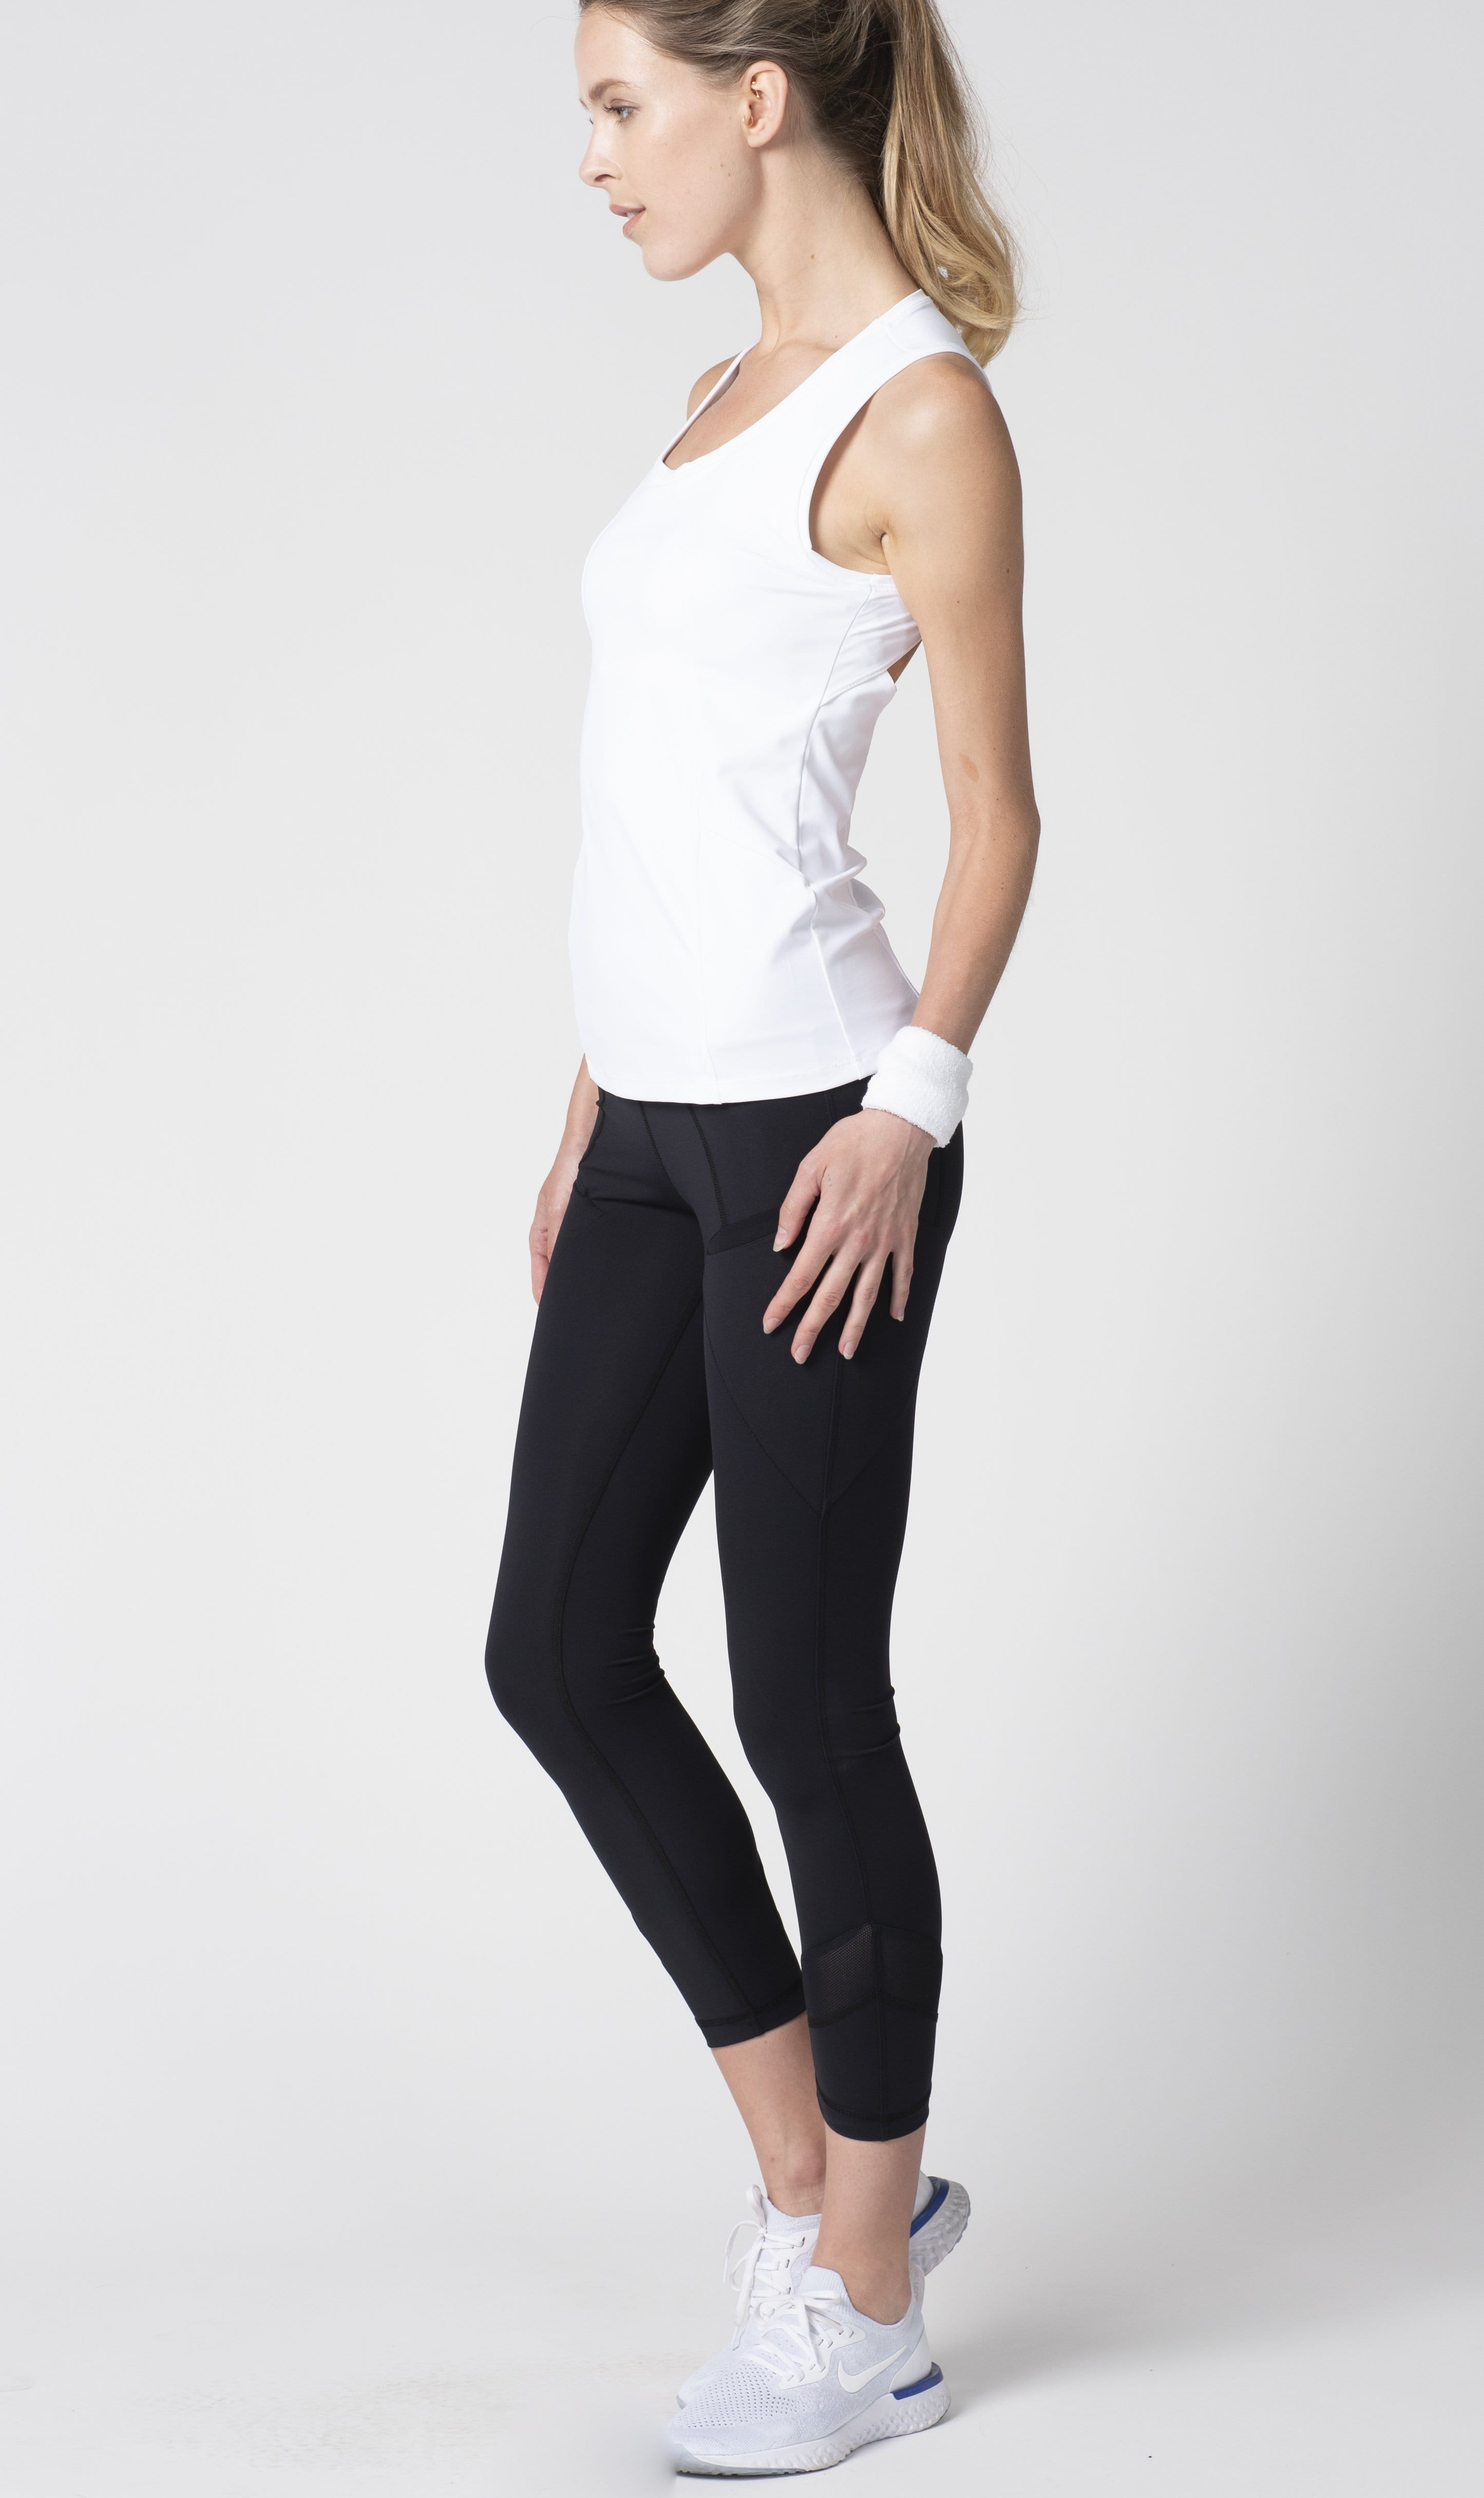 Clay Tank - Tonic UAE Clay Tank - Athletic Wear Tonic UAE - tonic athletic apparel Tonic UAE - tonic UAE